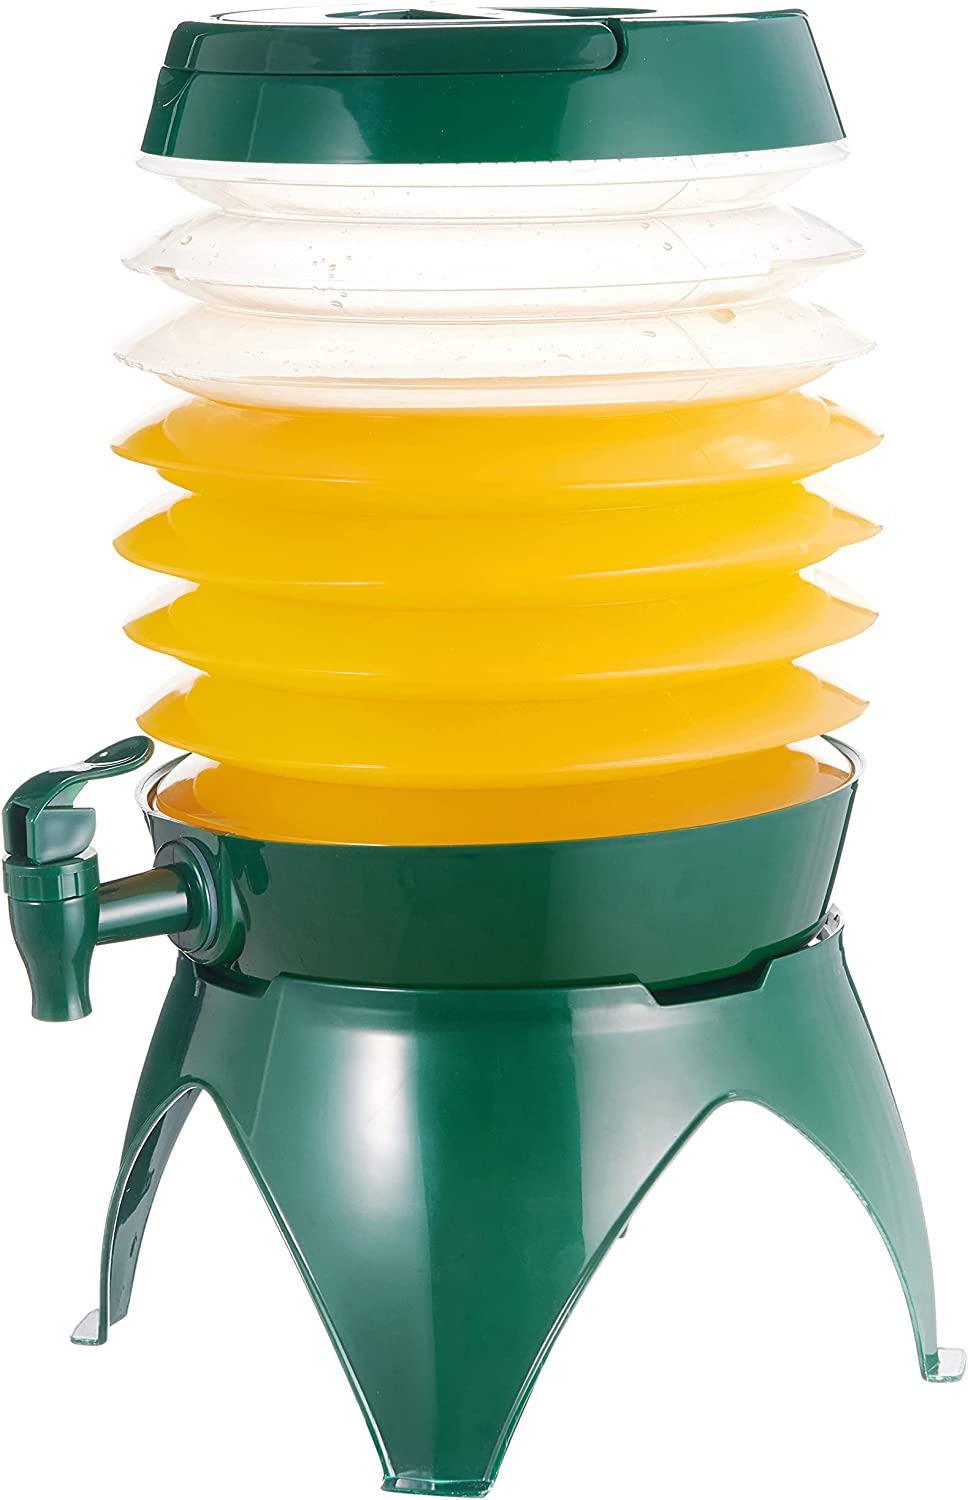 gleehome Plastic Drink Dispenser for Parties,Collapsible Beverage Dispenser with Spigot 1.5 Gal